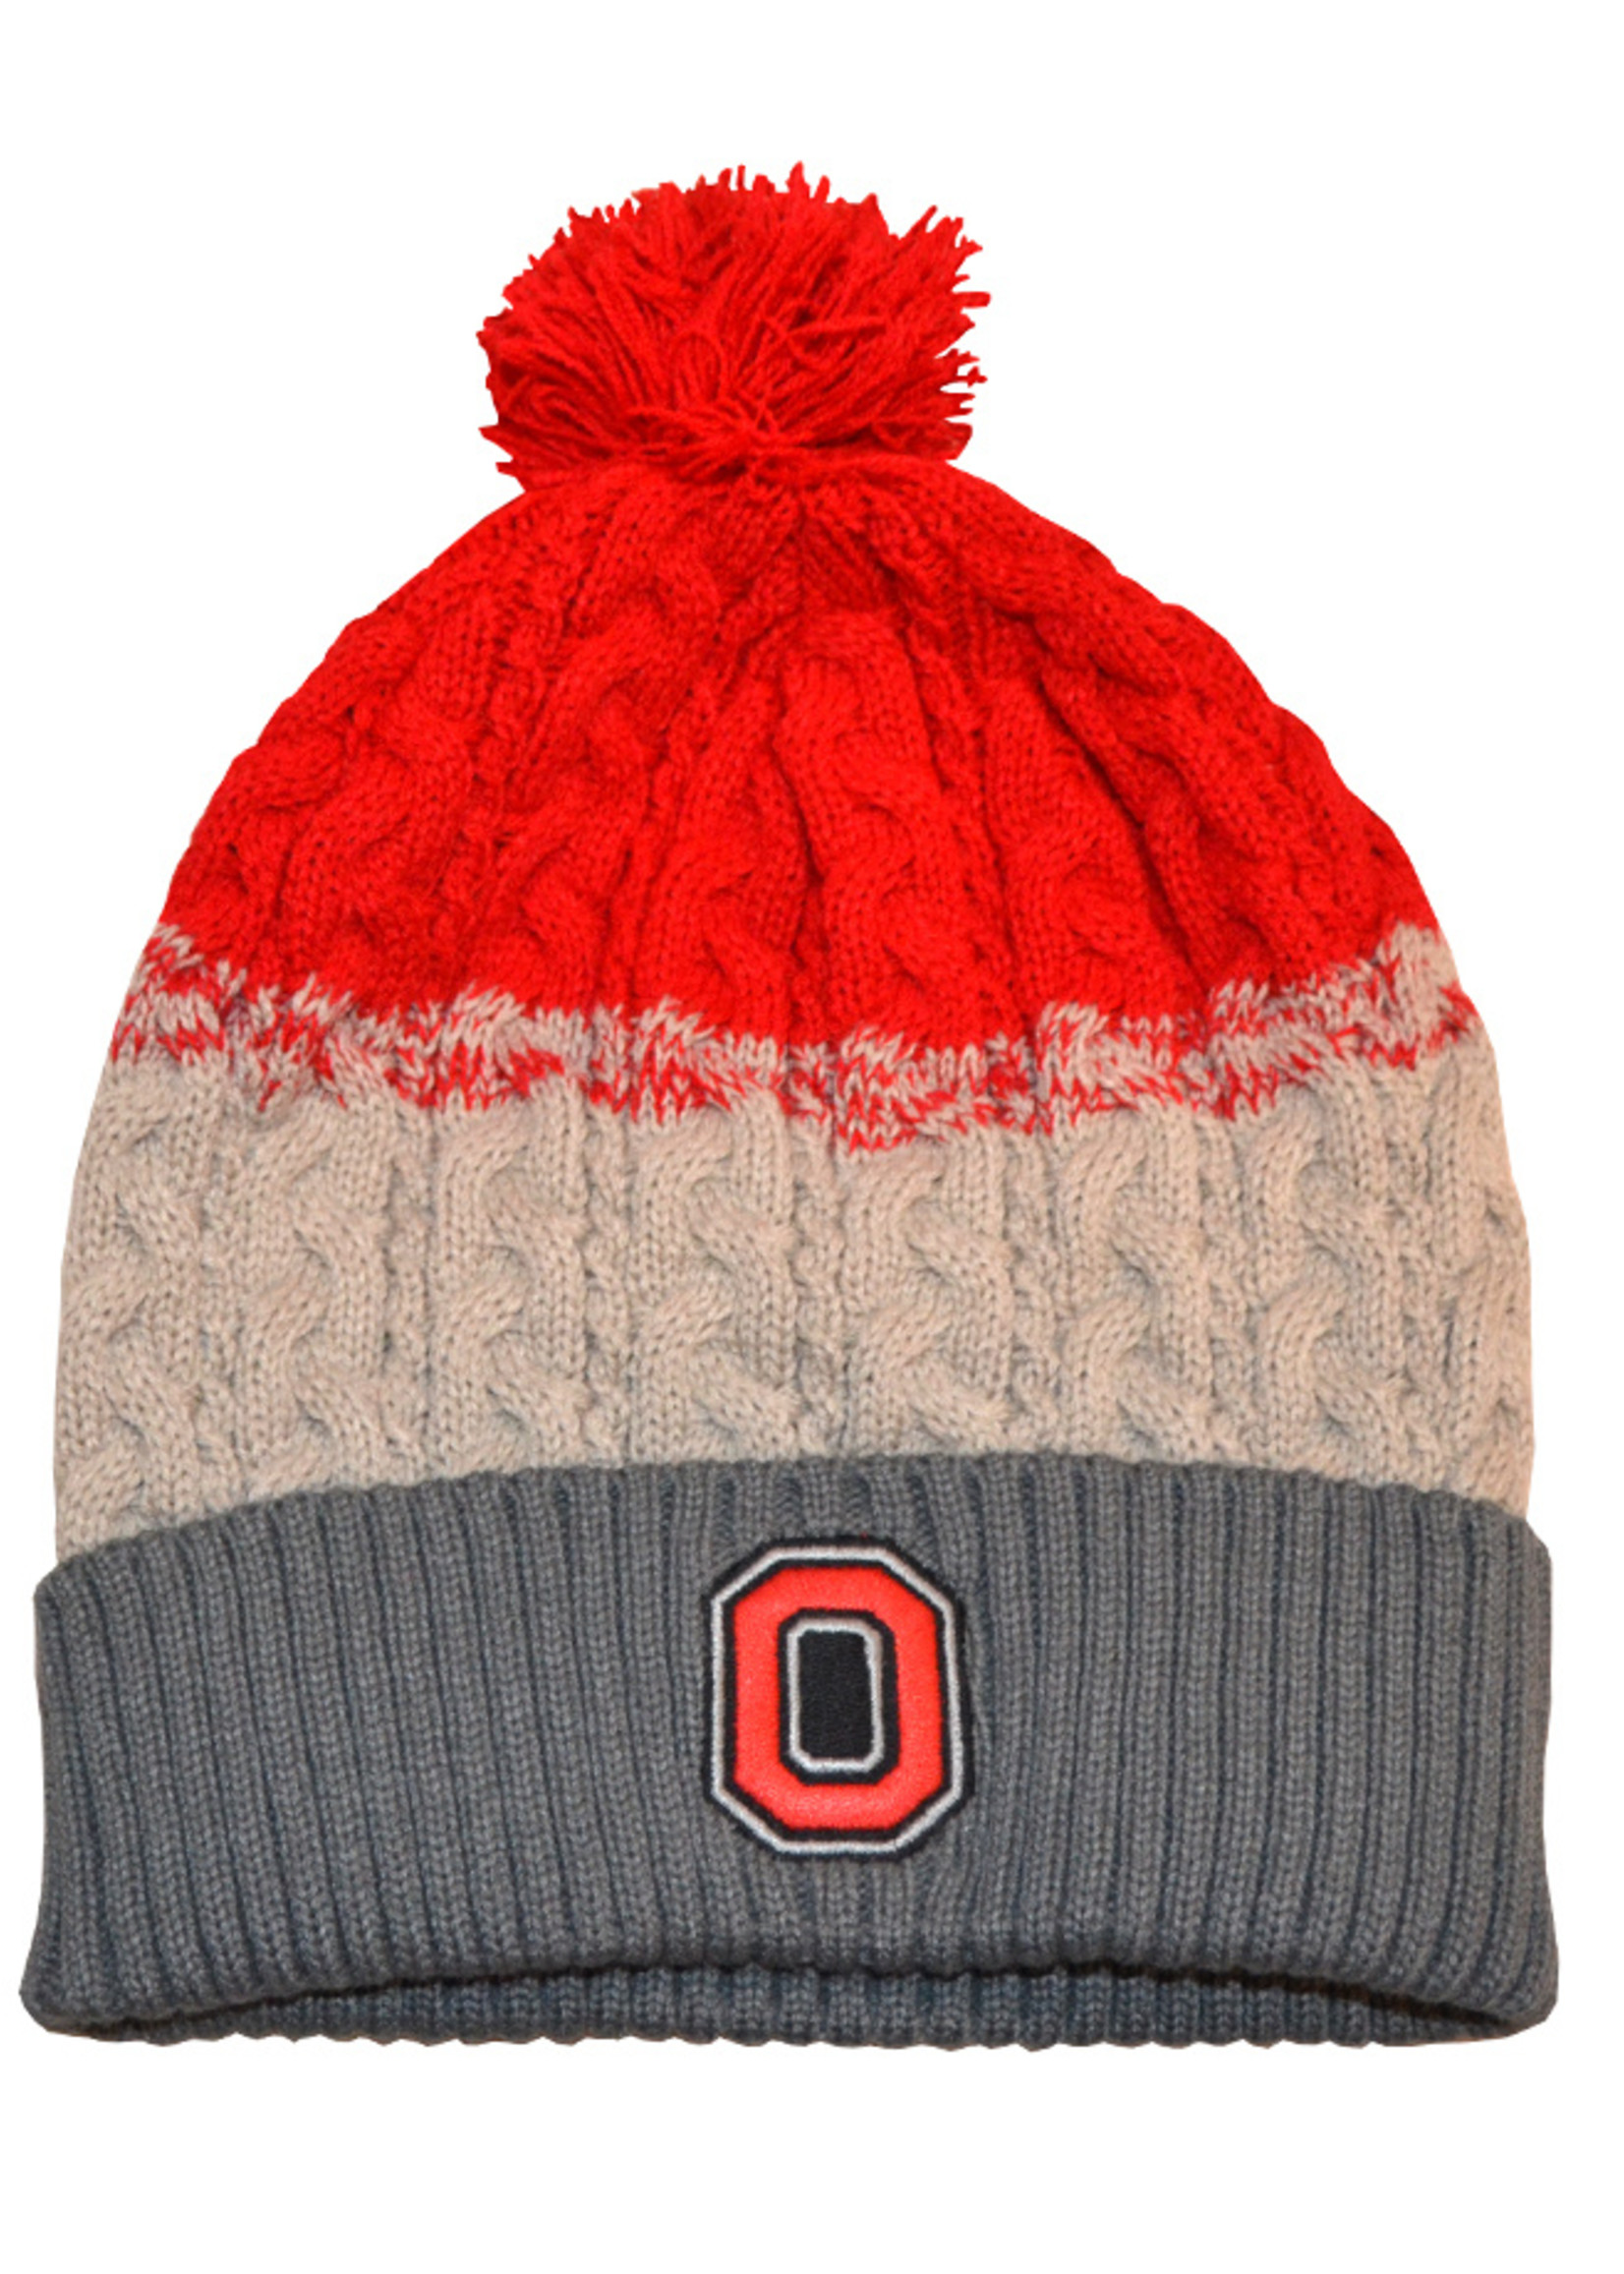 Top of the World Ohio State Buckeyes Womens Knit Hat and Glove Set